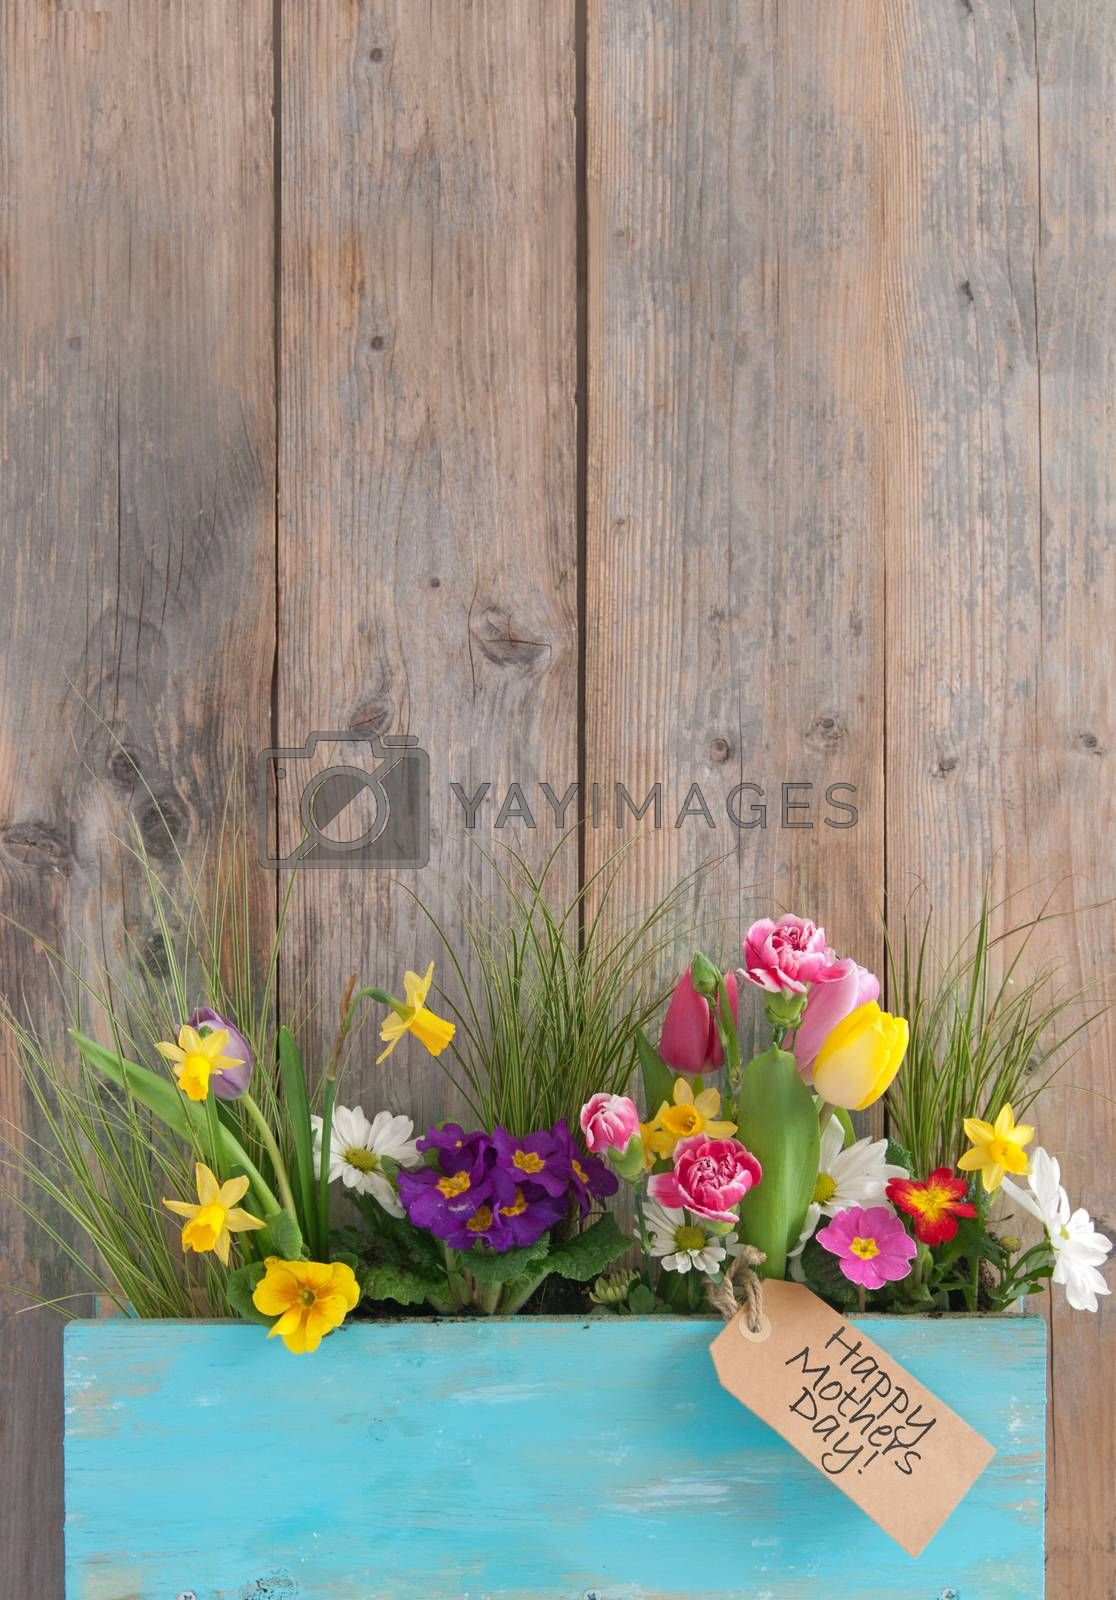 Mothers day gift label attached to a selection of spring flowers inside a wooden plant holder